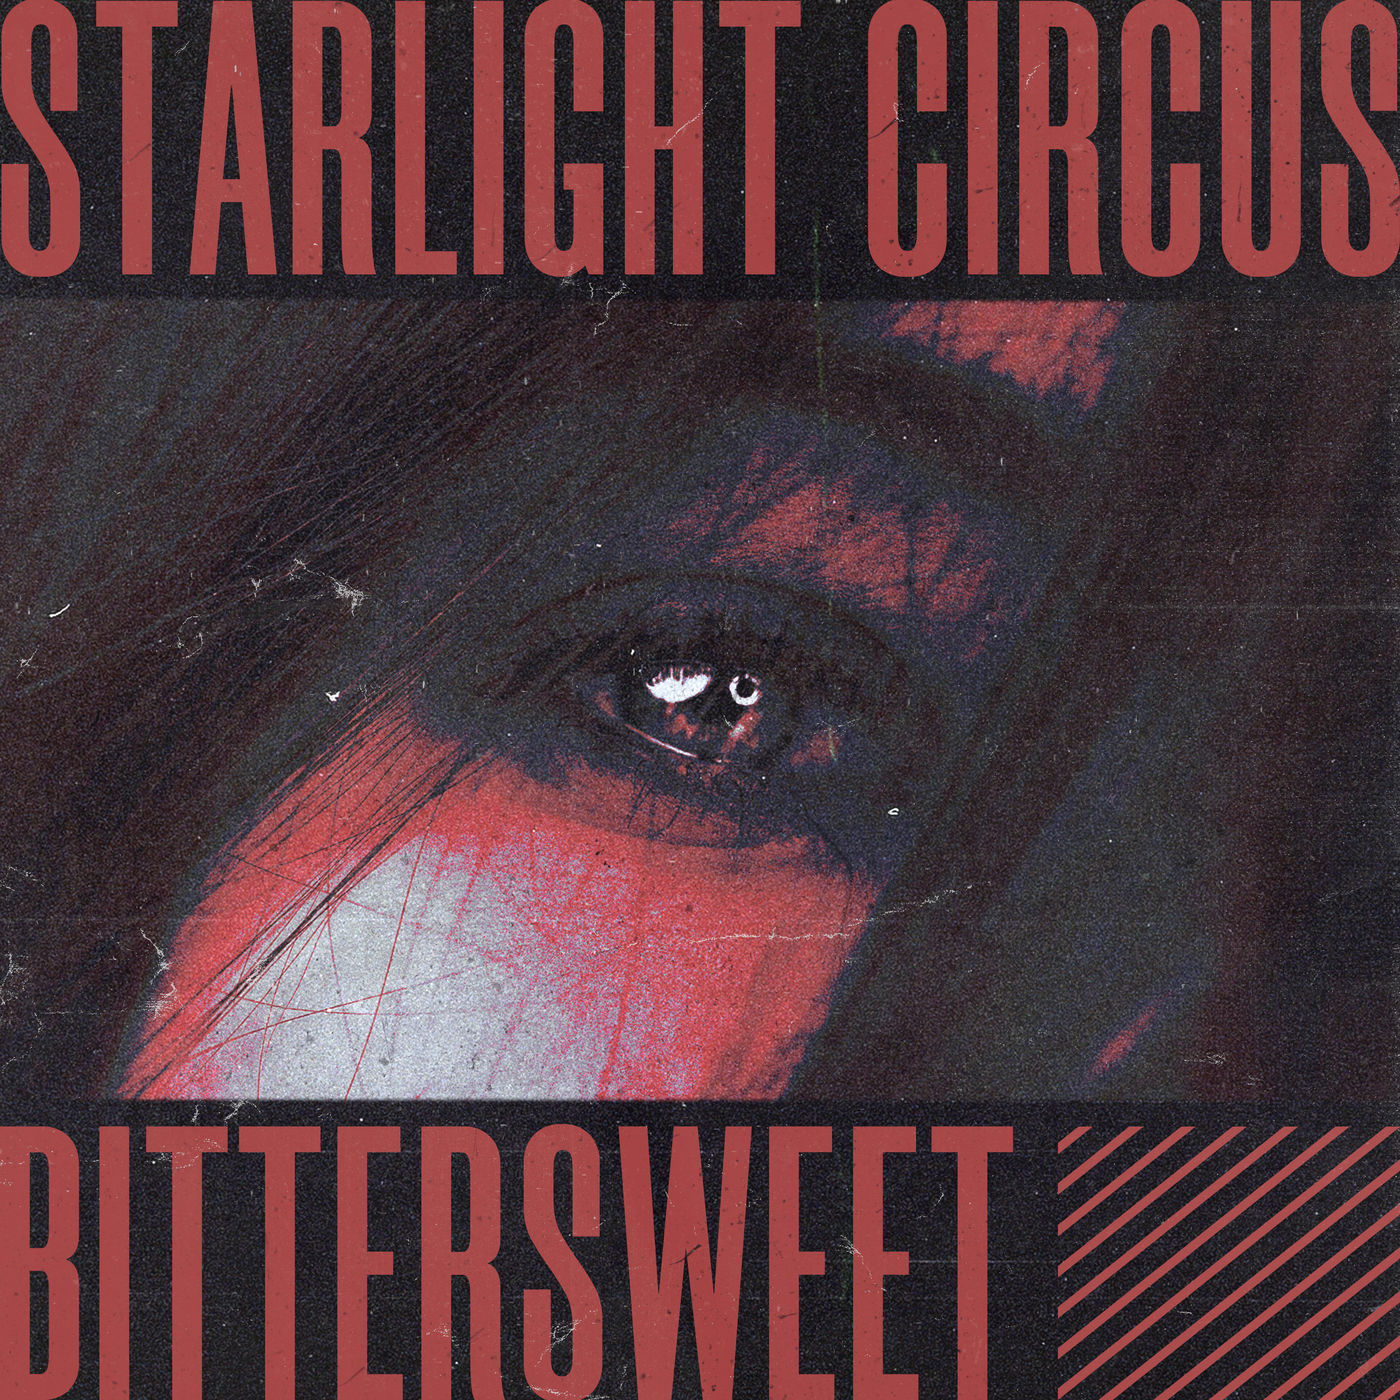 Starlight Circus - Bittersweet [single] (2020)